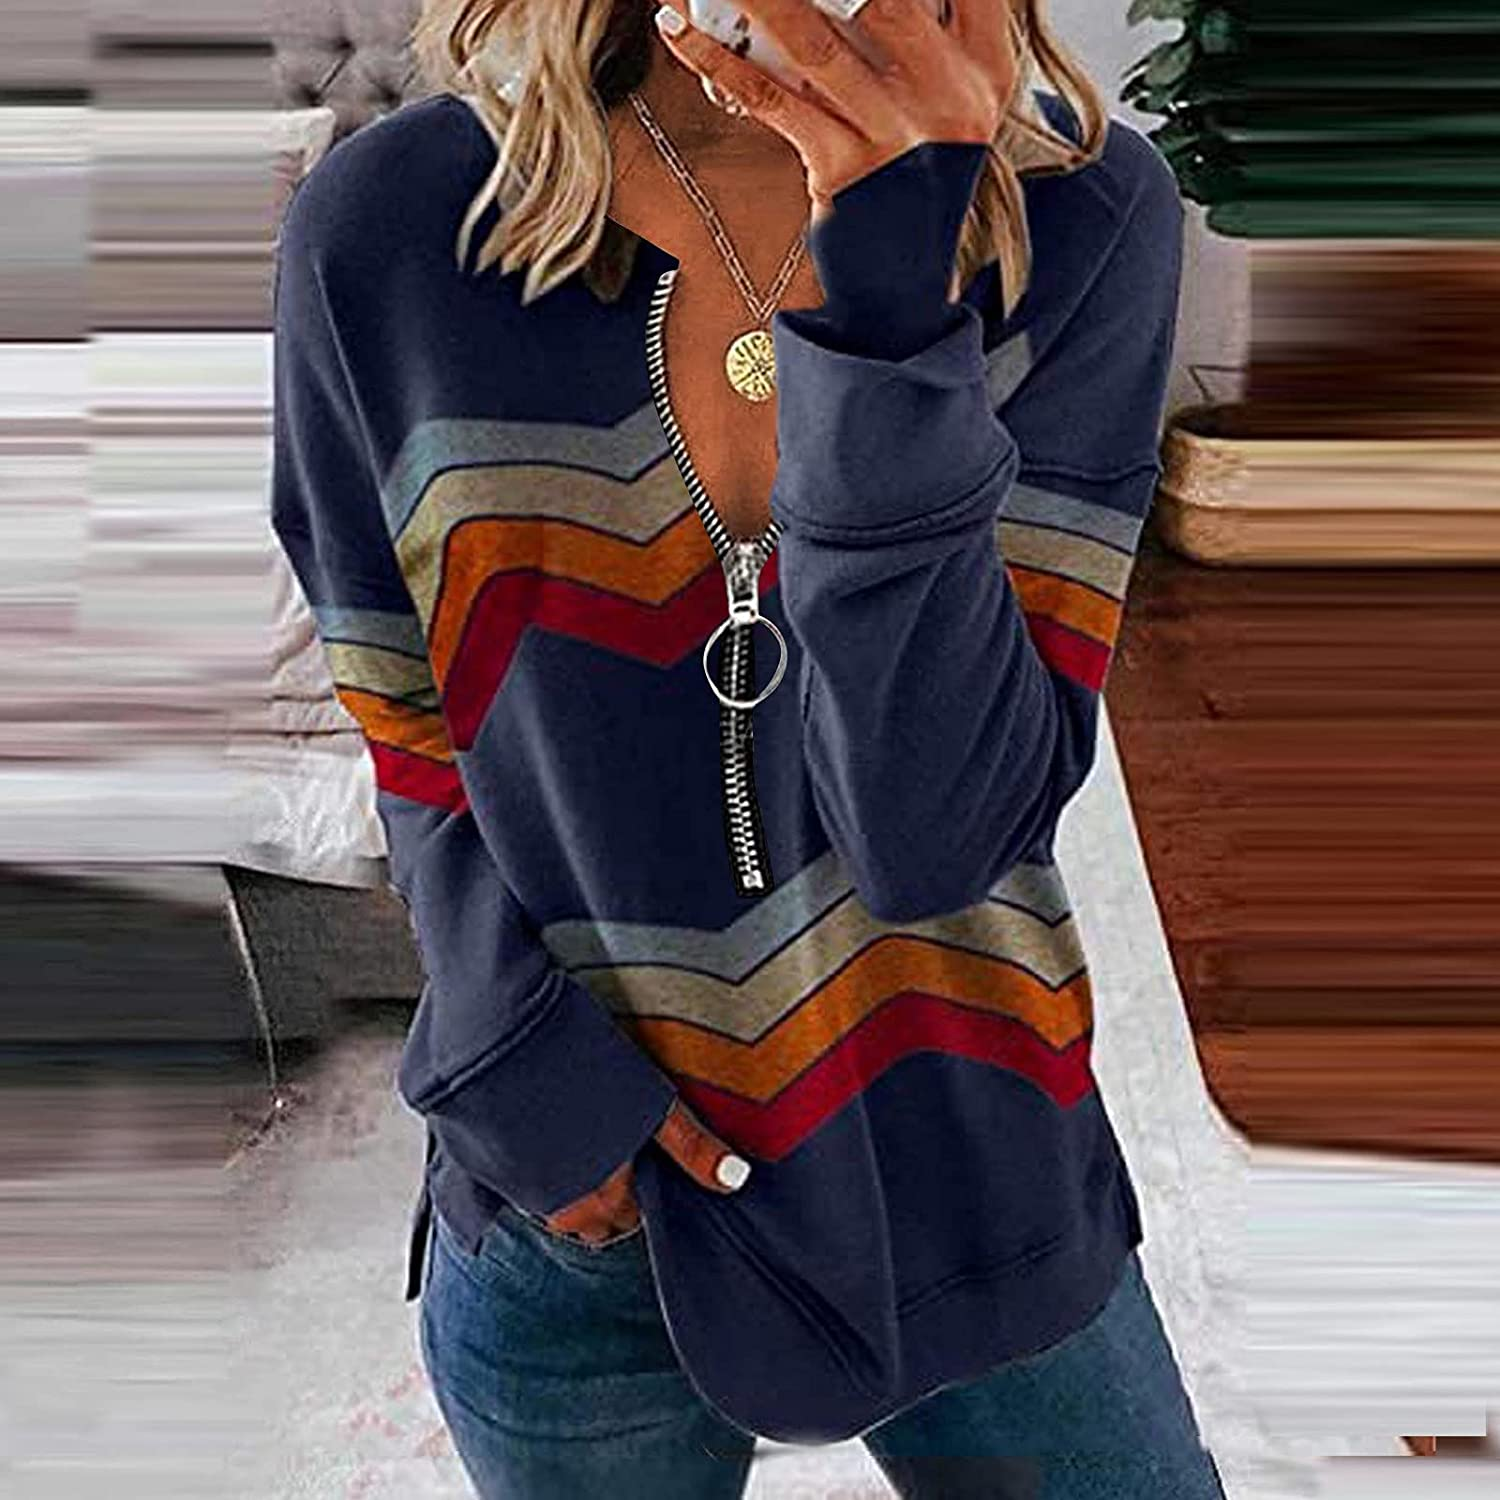 Meichang Women's Long Sleeve Tops Lapel Zipper T Shirts Casual Color Block Pullover Loose Splicing Tees